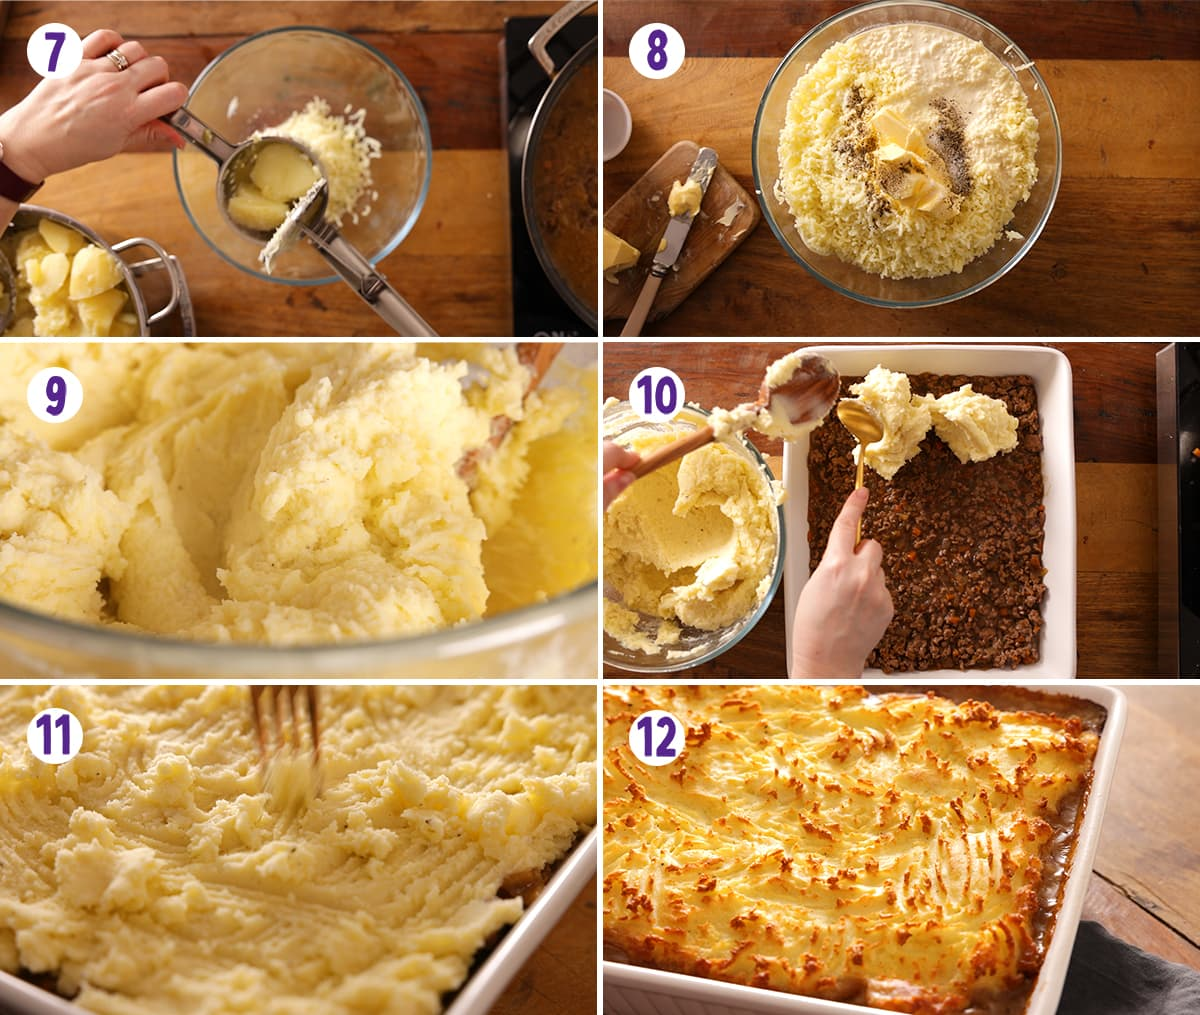 6 image collage showing the final steps for making shepherds pie.